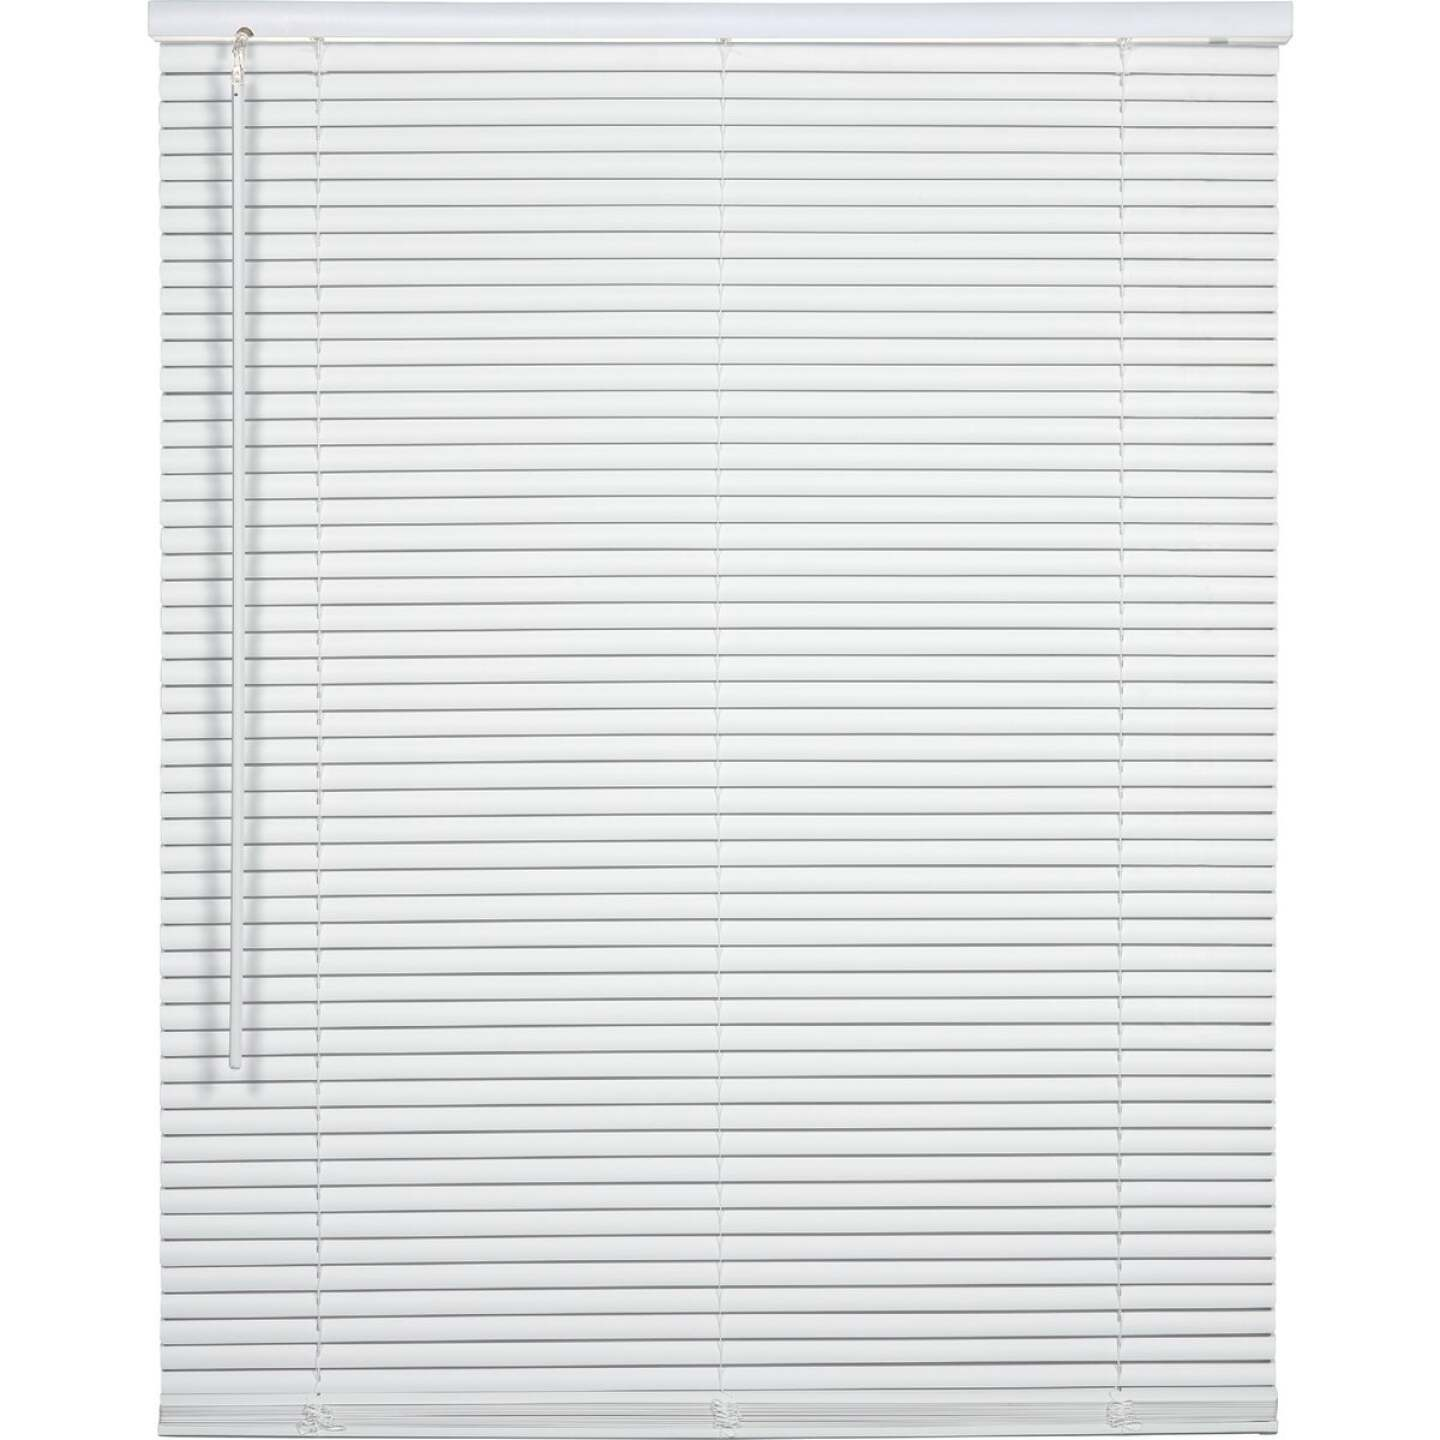 Home Impressions 26 In. x 64 In. x 1 In. White Vinyl Light Filtering Cordless Mini Blind Image 1